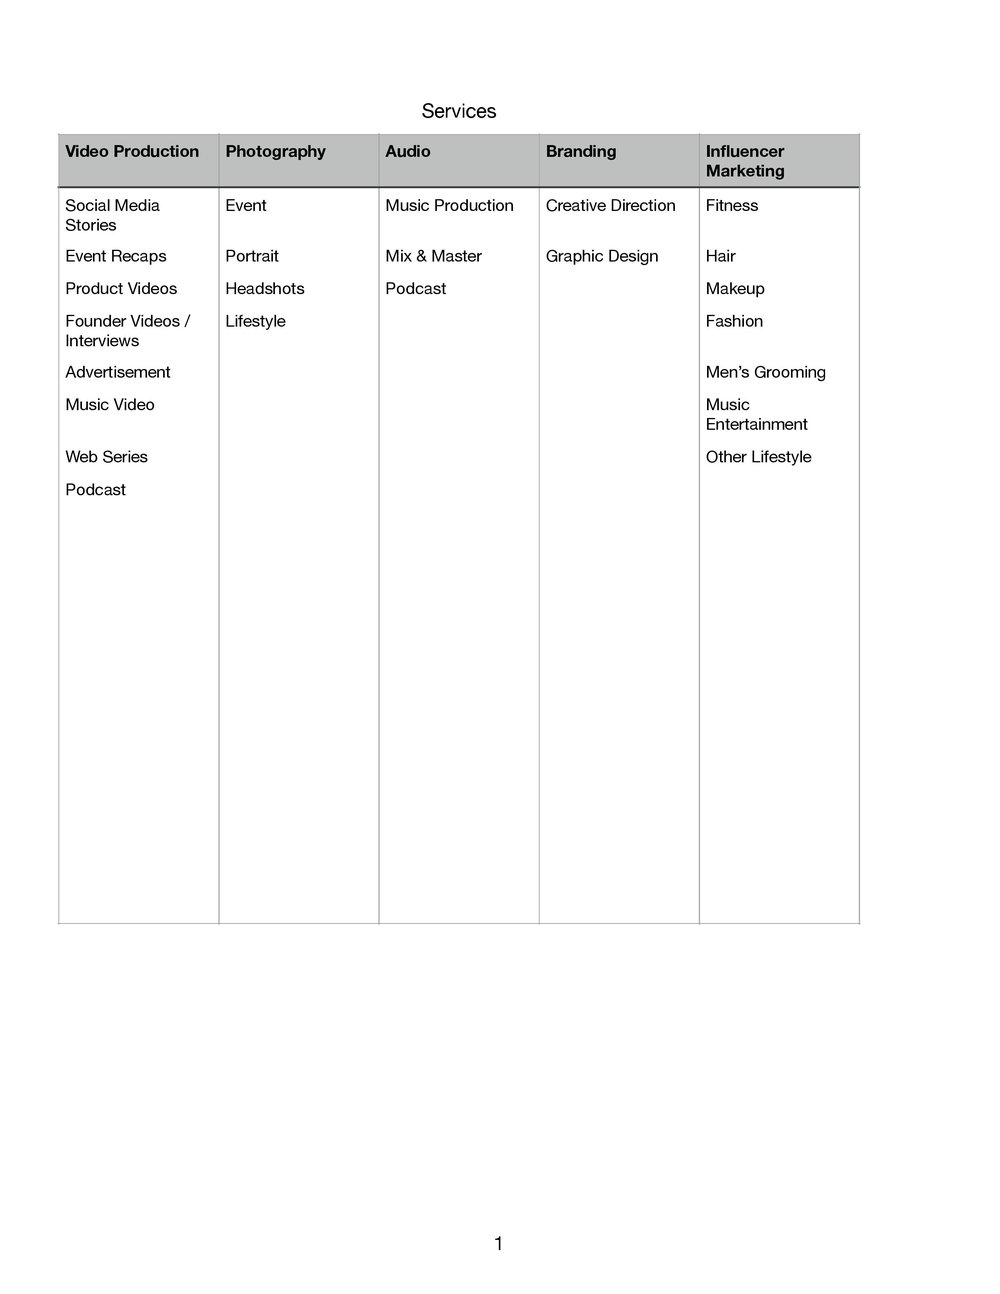 General Categories - There are more services within the general categories not listed